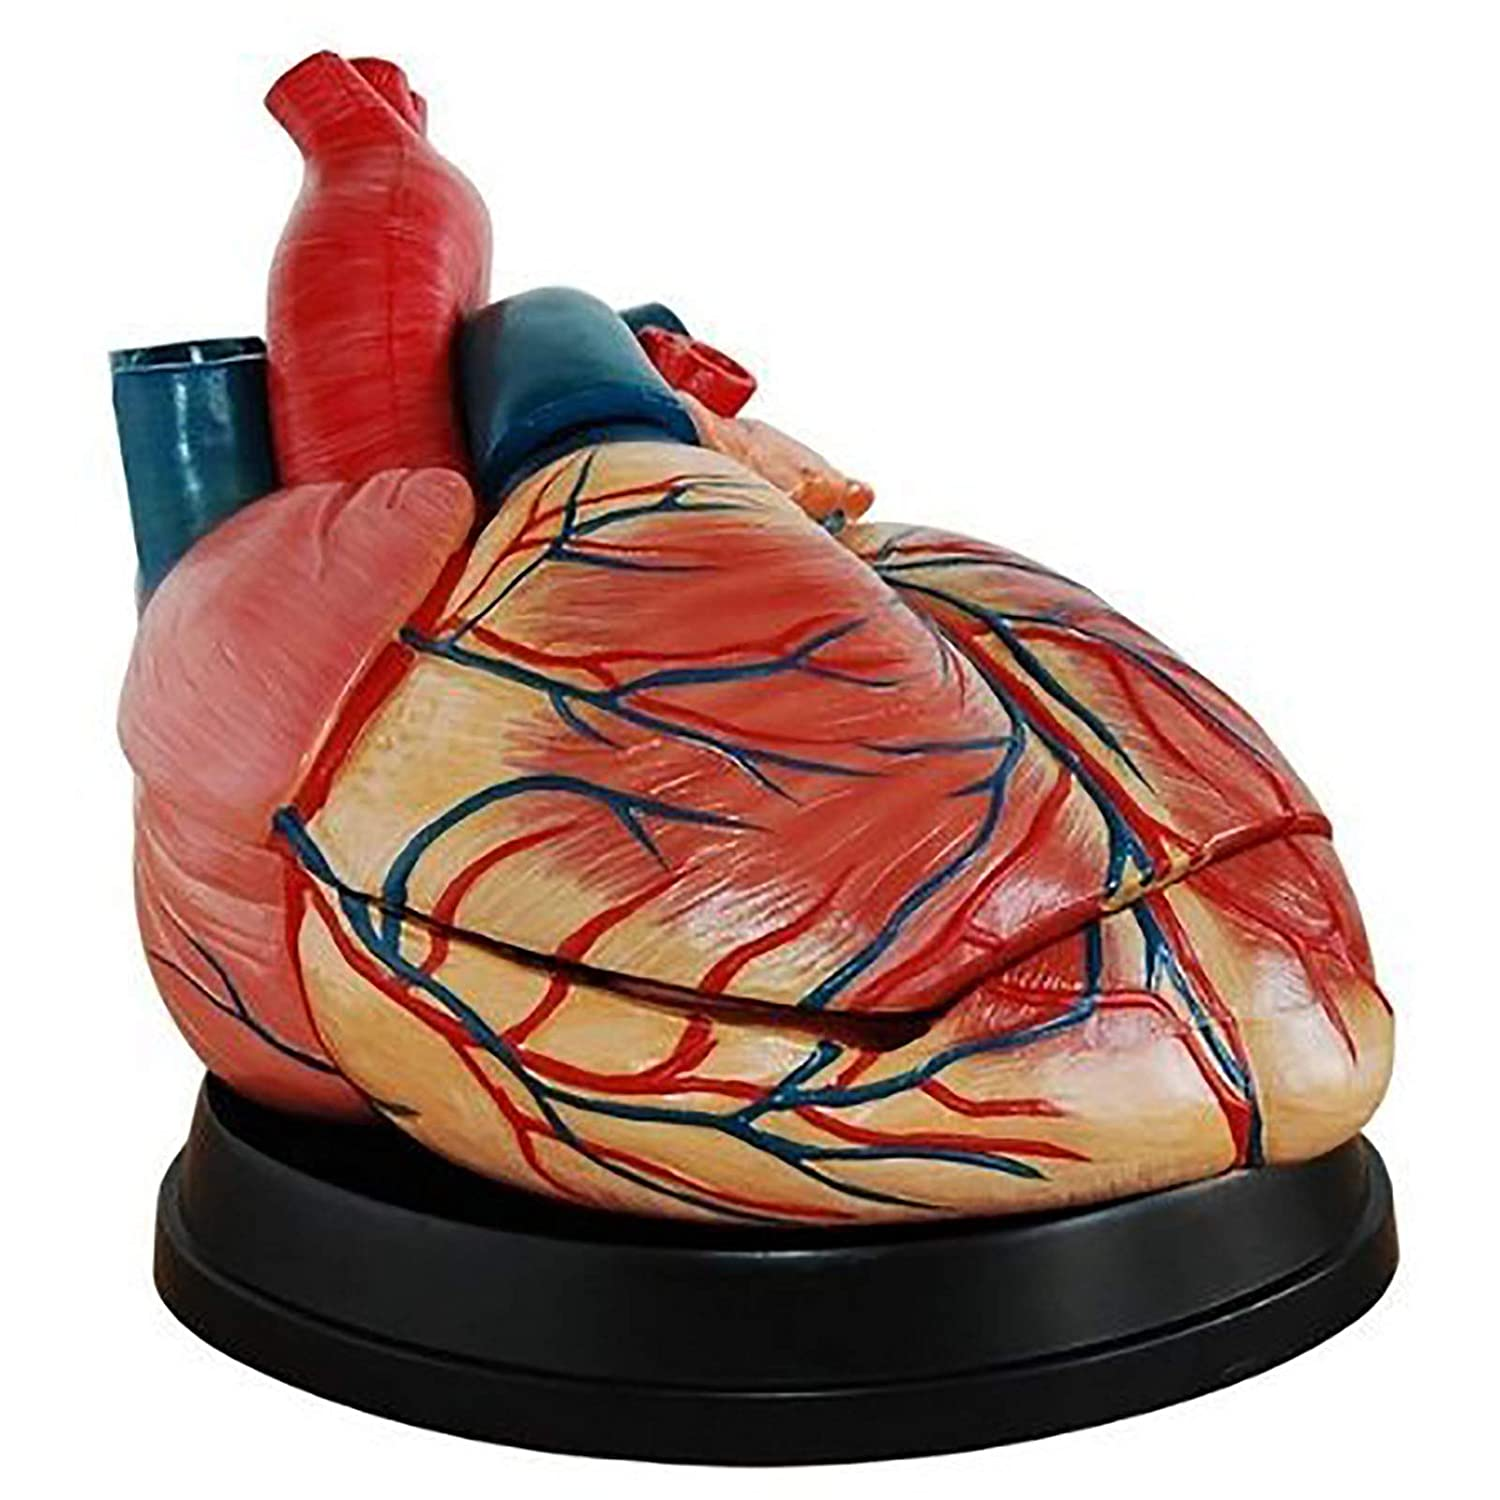 lowest price ZLF 5X Heart Anatomical Model Medical Baltimore Mall for Scienc Suitable